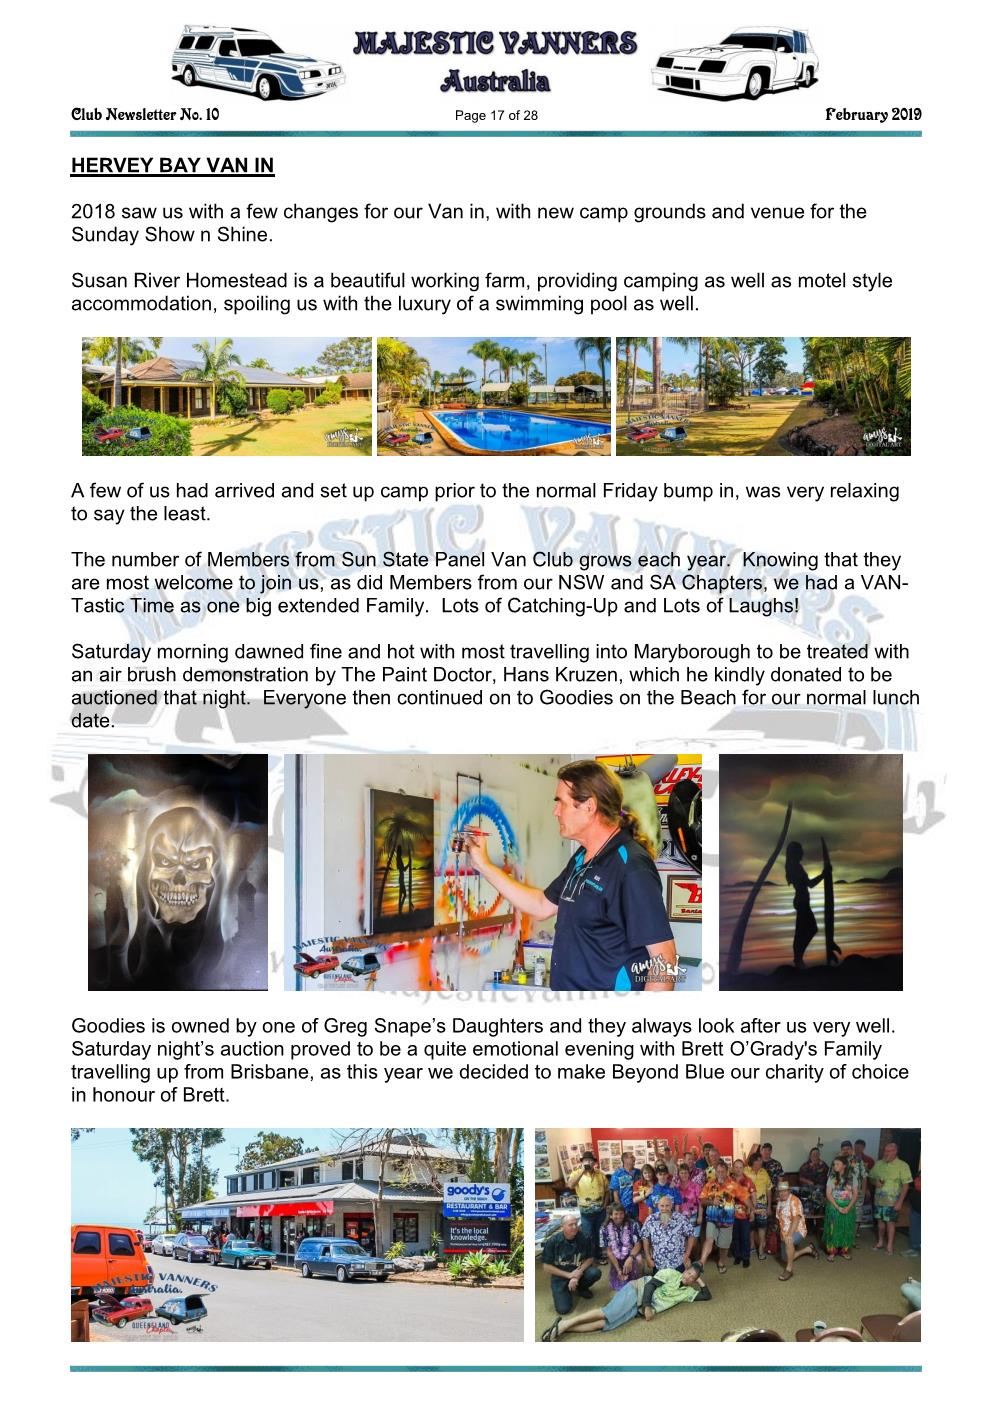 MAJESTIC VANNERS Newsletter Issue No: 10 February 2019 Mv_new26